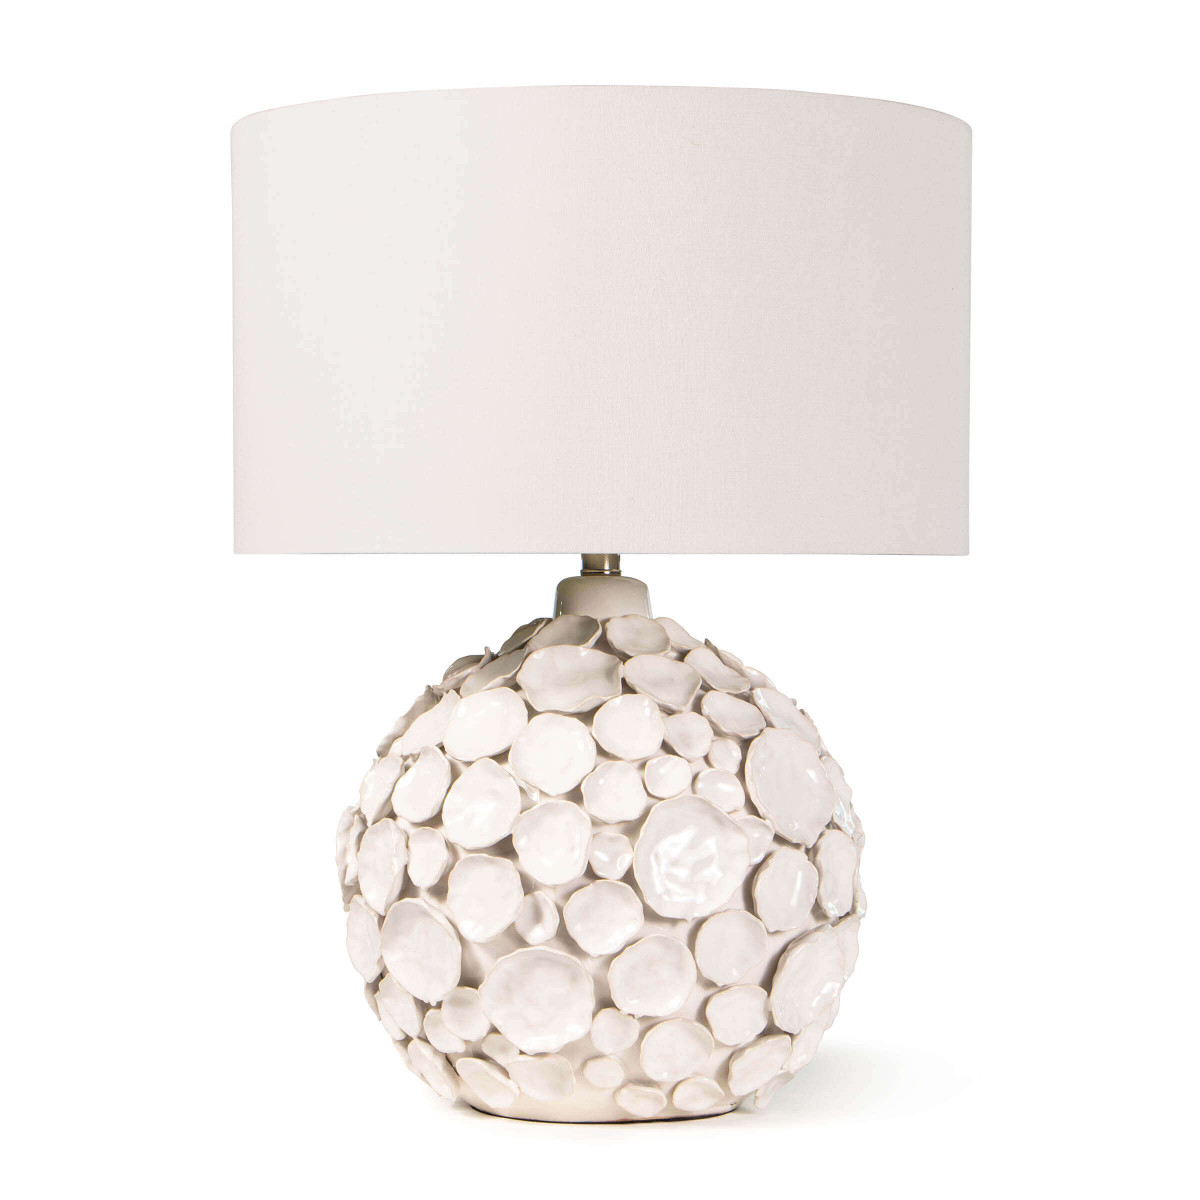 Cayman Ceramic Lamp